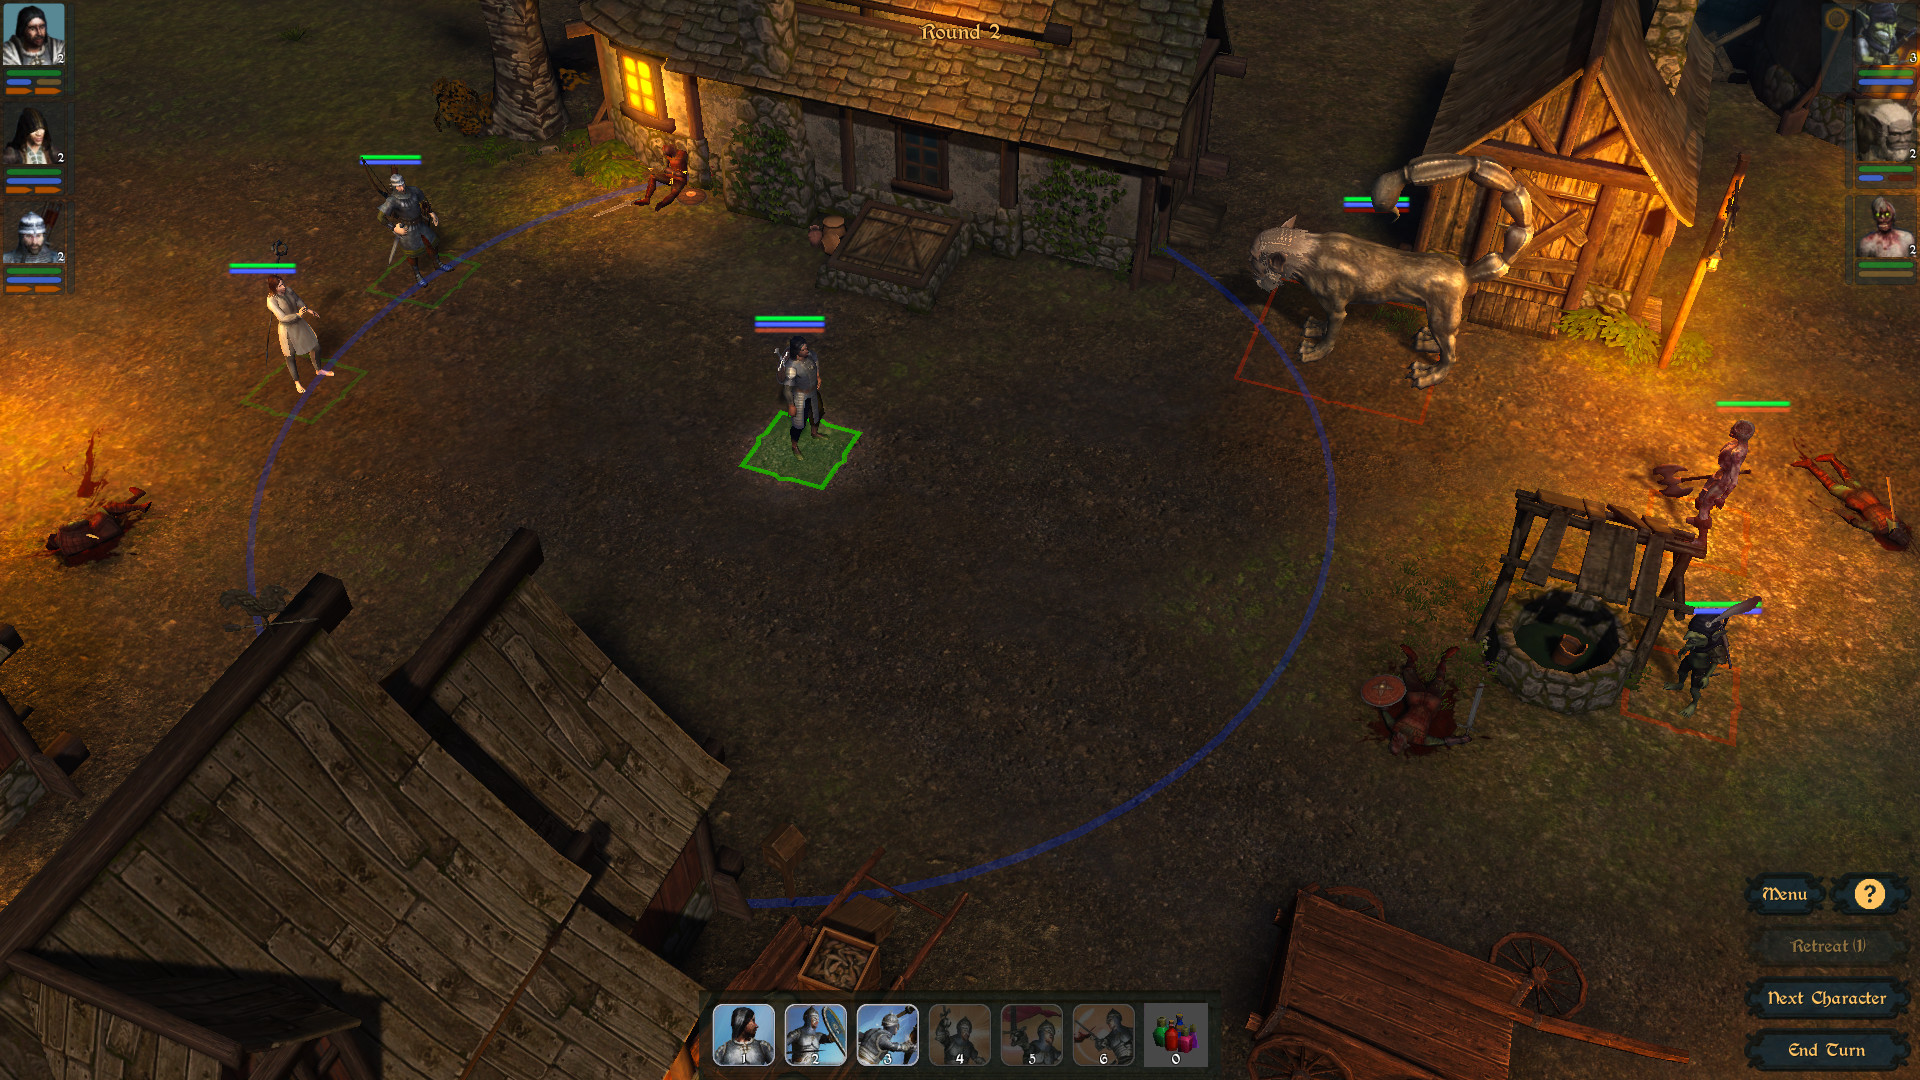 The Storm Guard: Darkness Screenshot 2